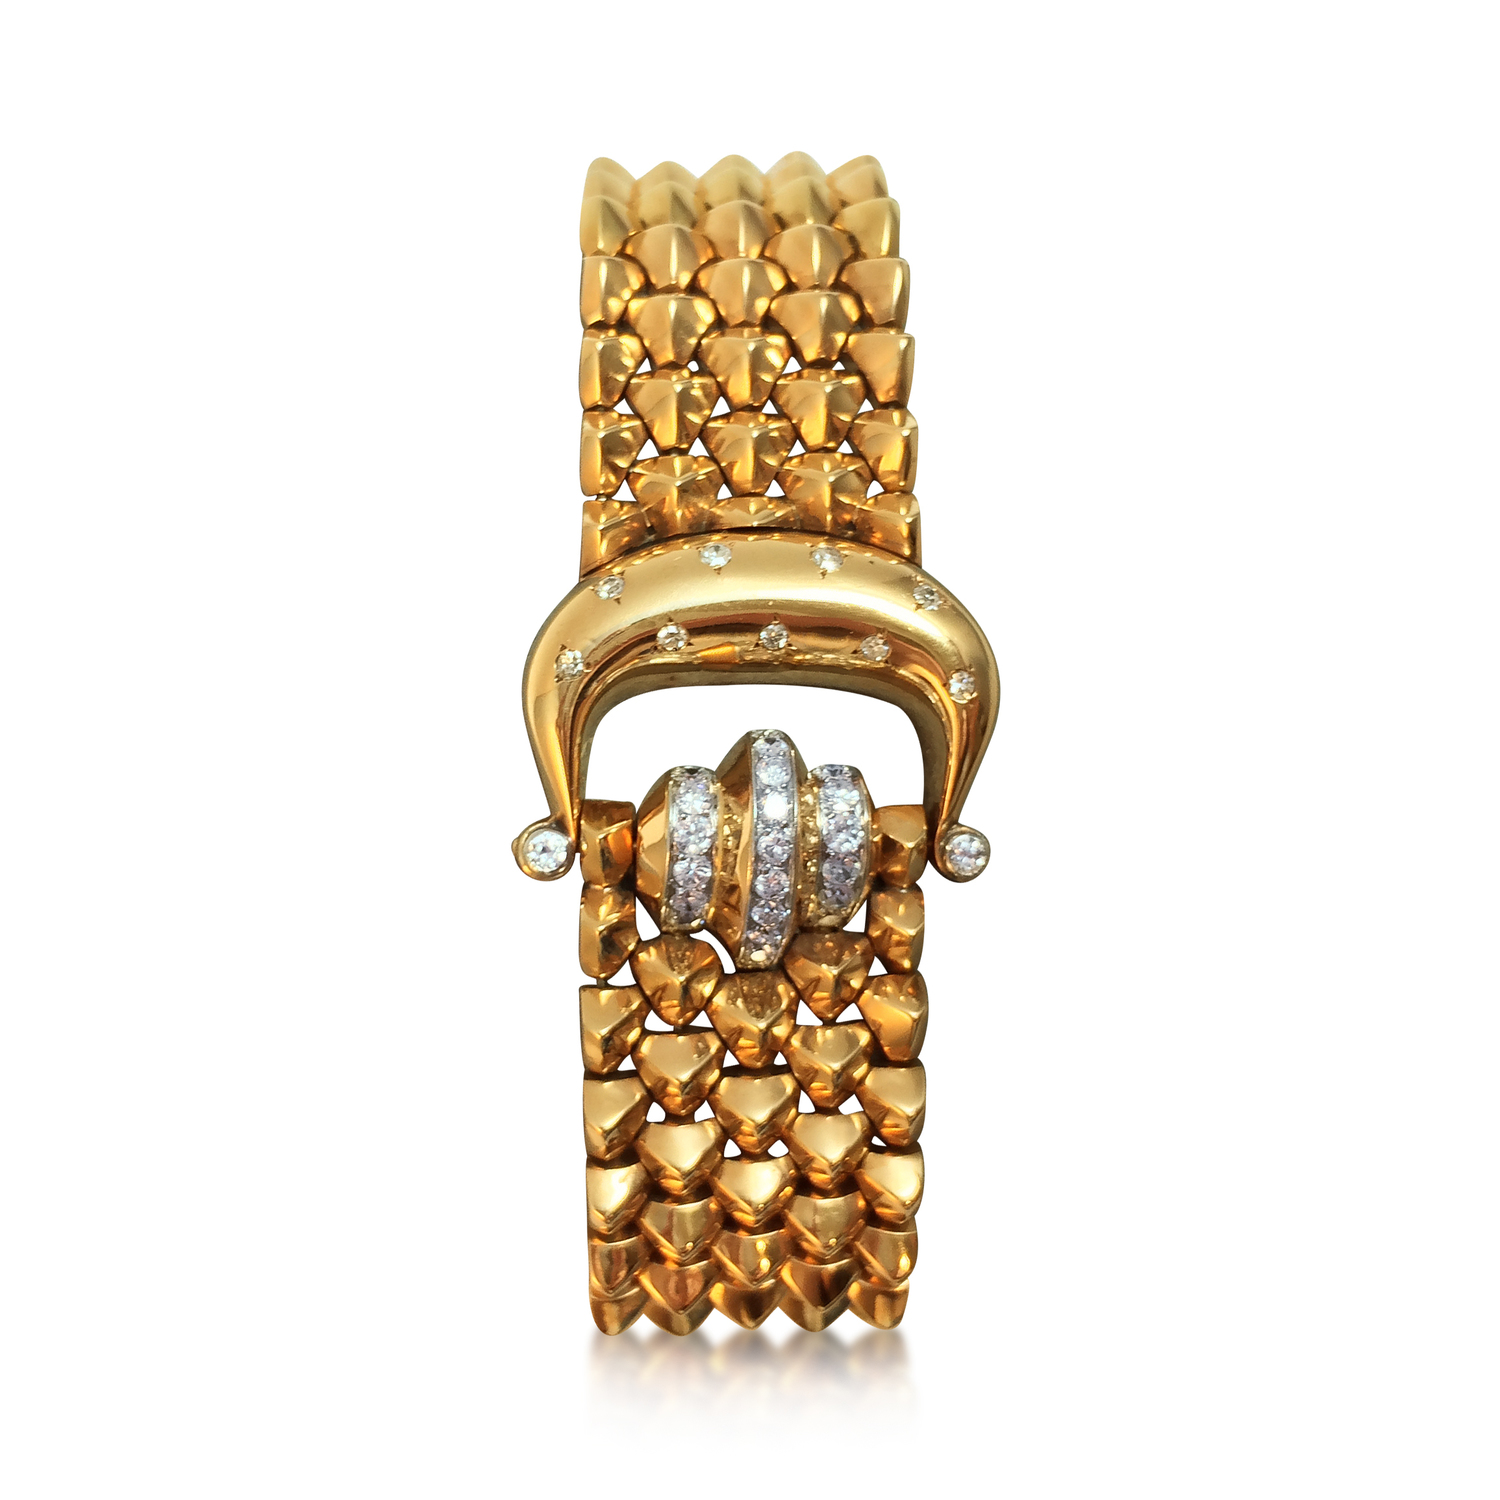 An 18k Retro Yellow Gold and Diamond Bracelet, By Mauboussin, Circa 1950   This effortlessly chic bracelet features highly flexible links of pyramid design and a diamond-set buckle motif with a deployant clasp. It bears French hallmarks, is signed Mauboussin, and measures 16.5cm long.